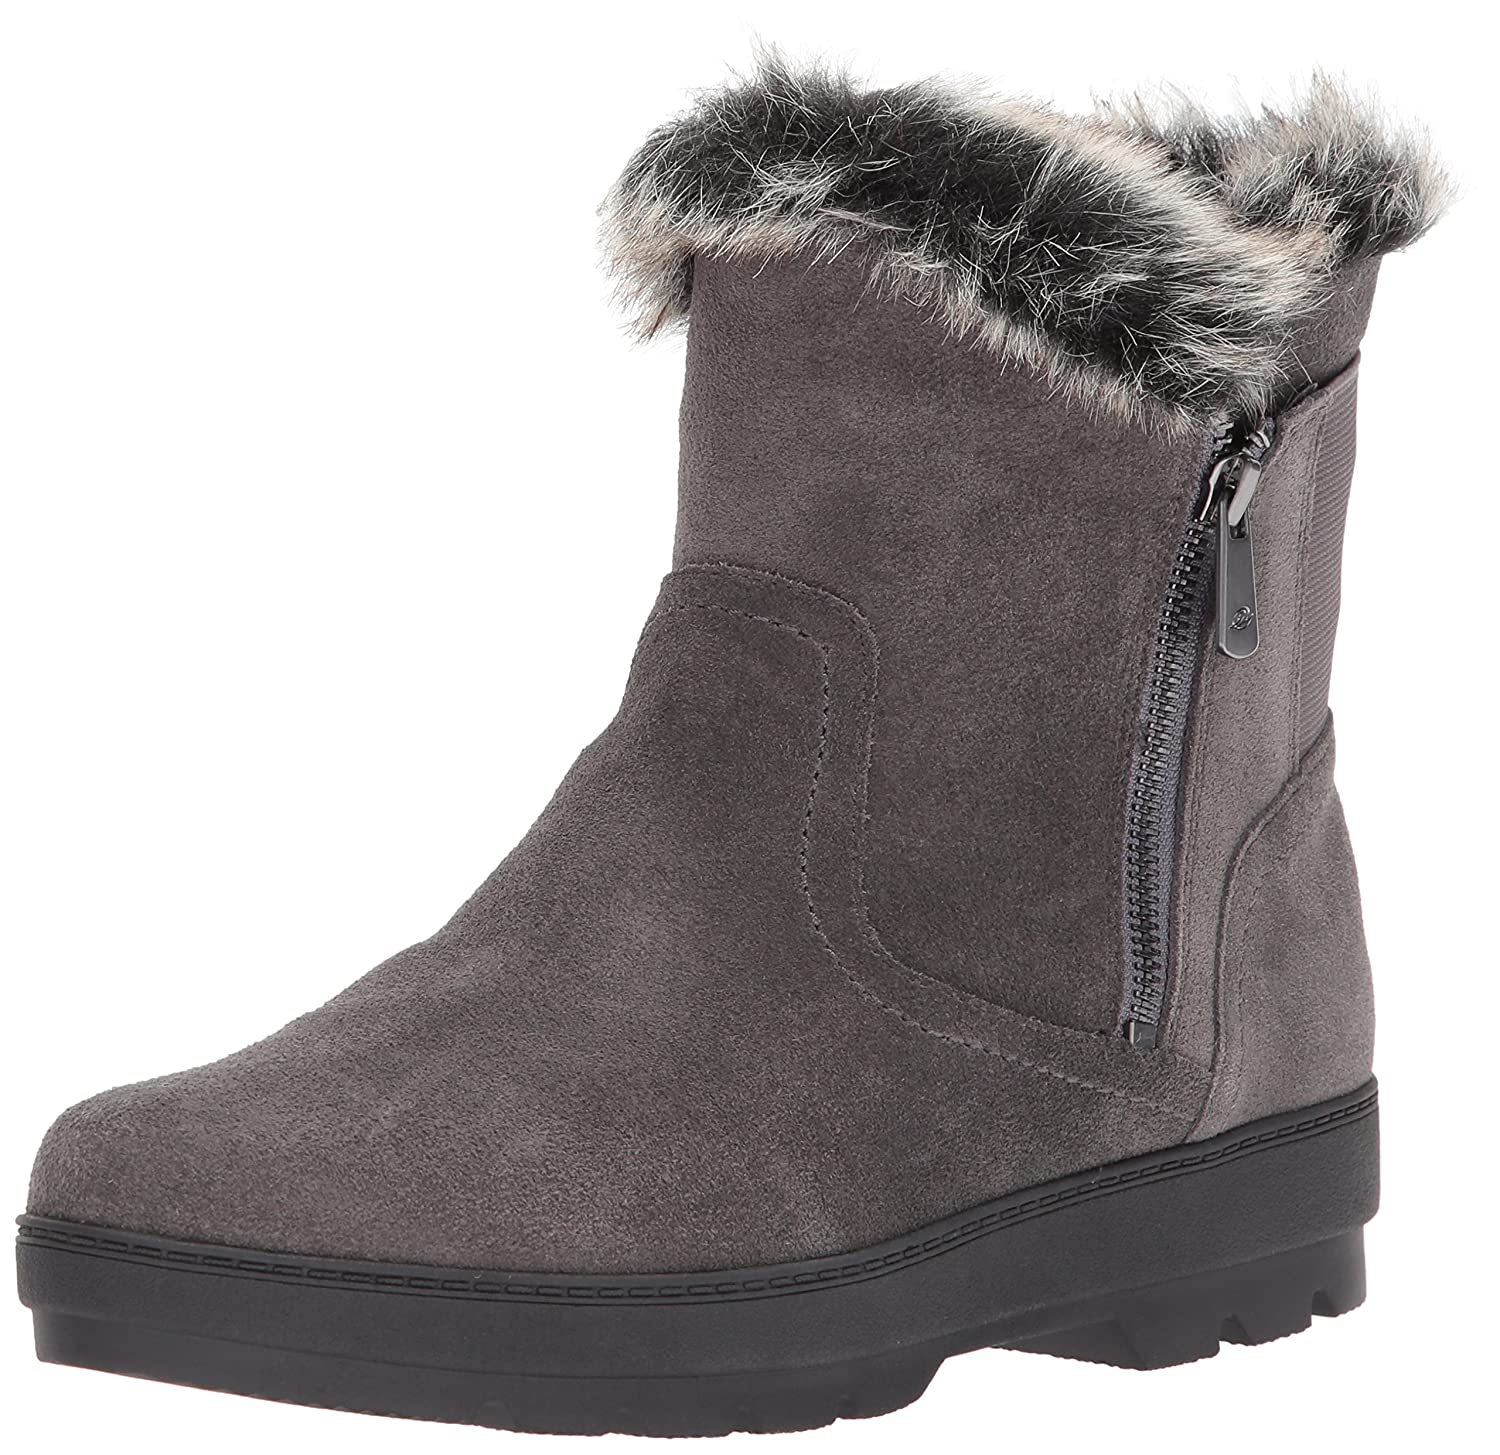 Easy Spirit Women's Adabelle Ankle Boot B074MMGFFN 7.5 W US|Grey